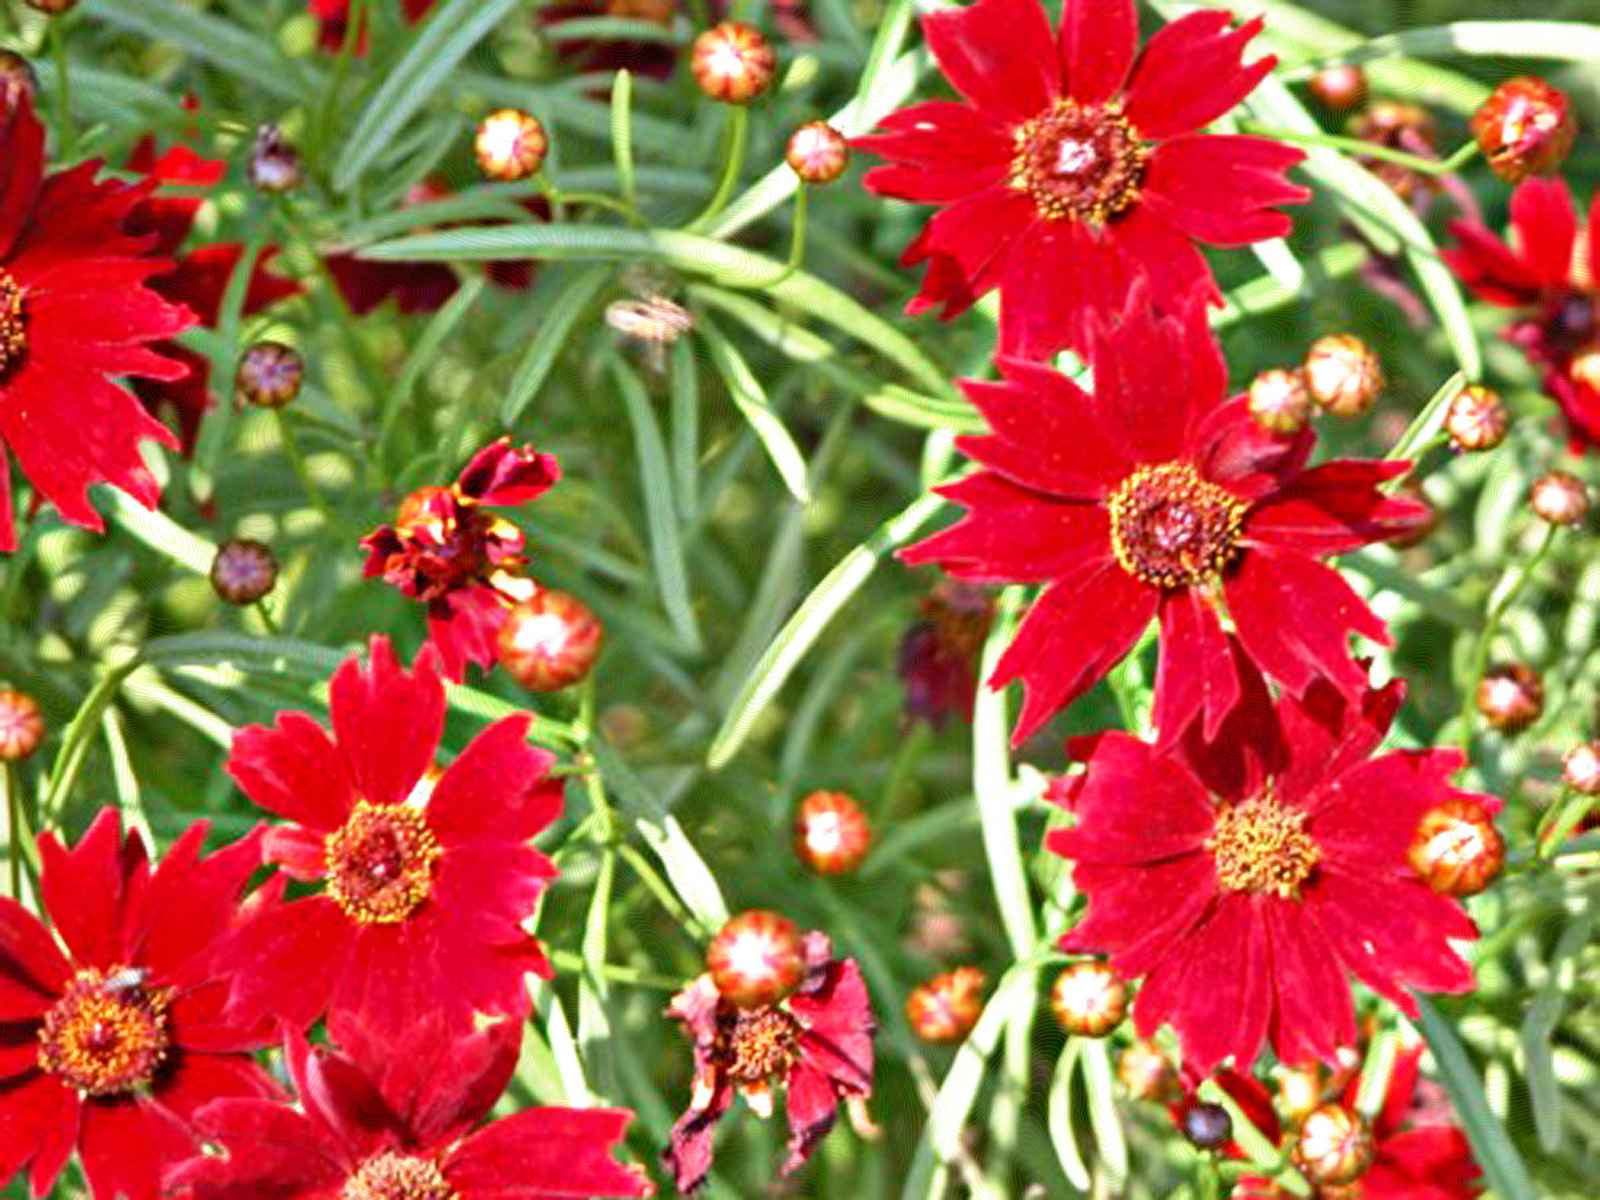 'Limerock Ruby' coreopsis with red flowers